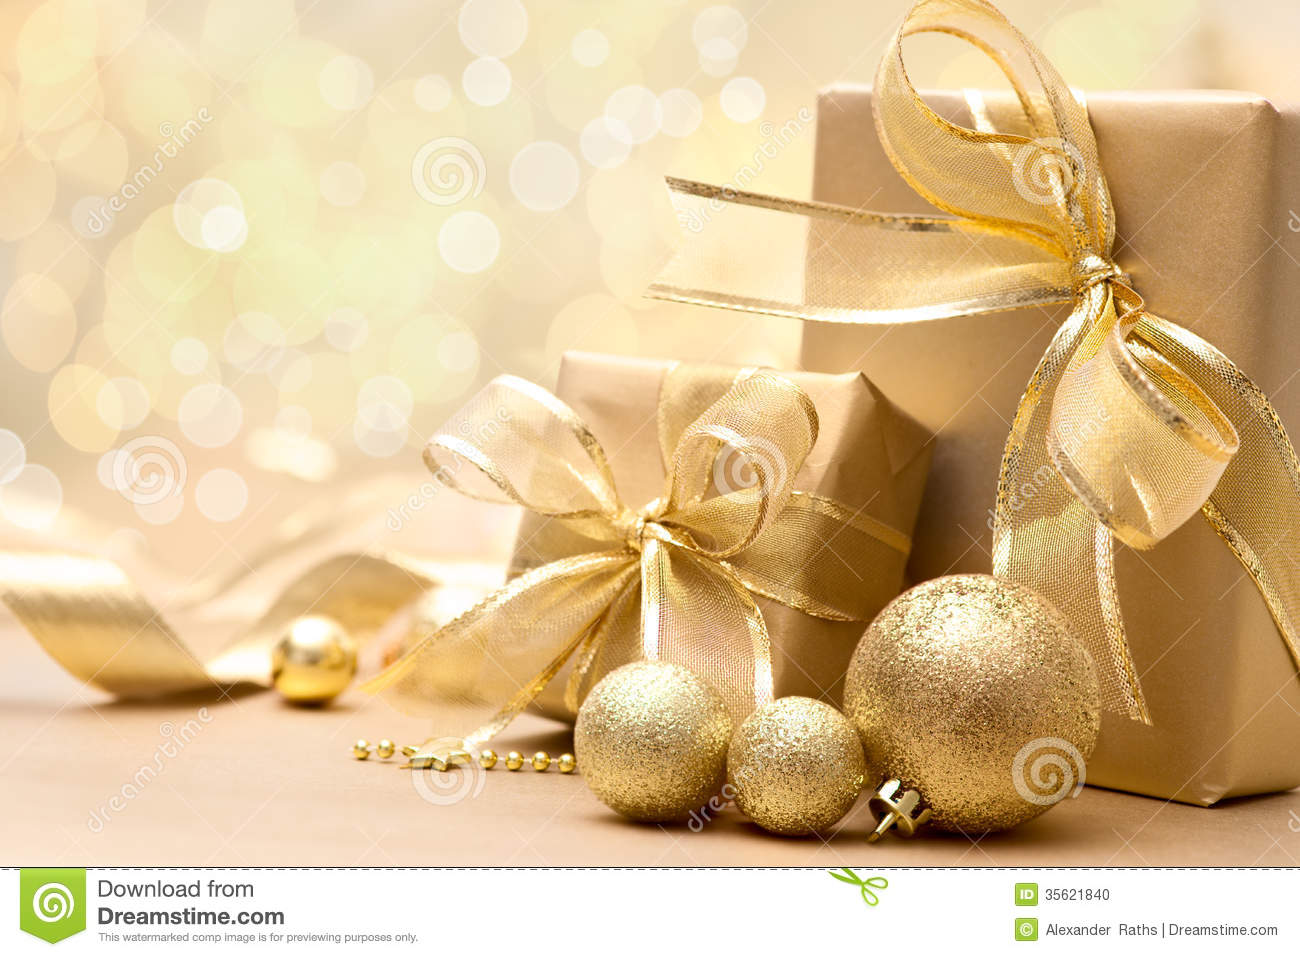 Gold Christmas Gift Boxes Stock Photo - Image: 35621840